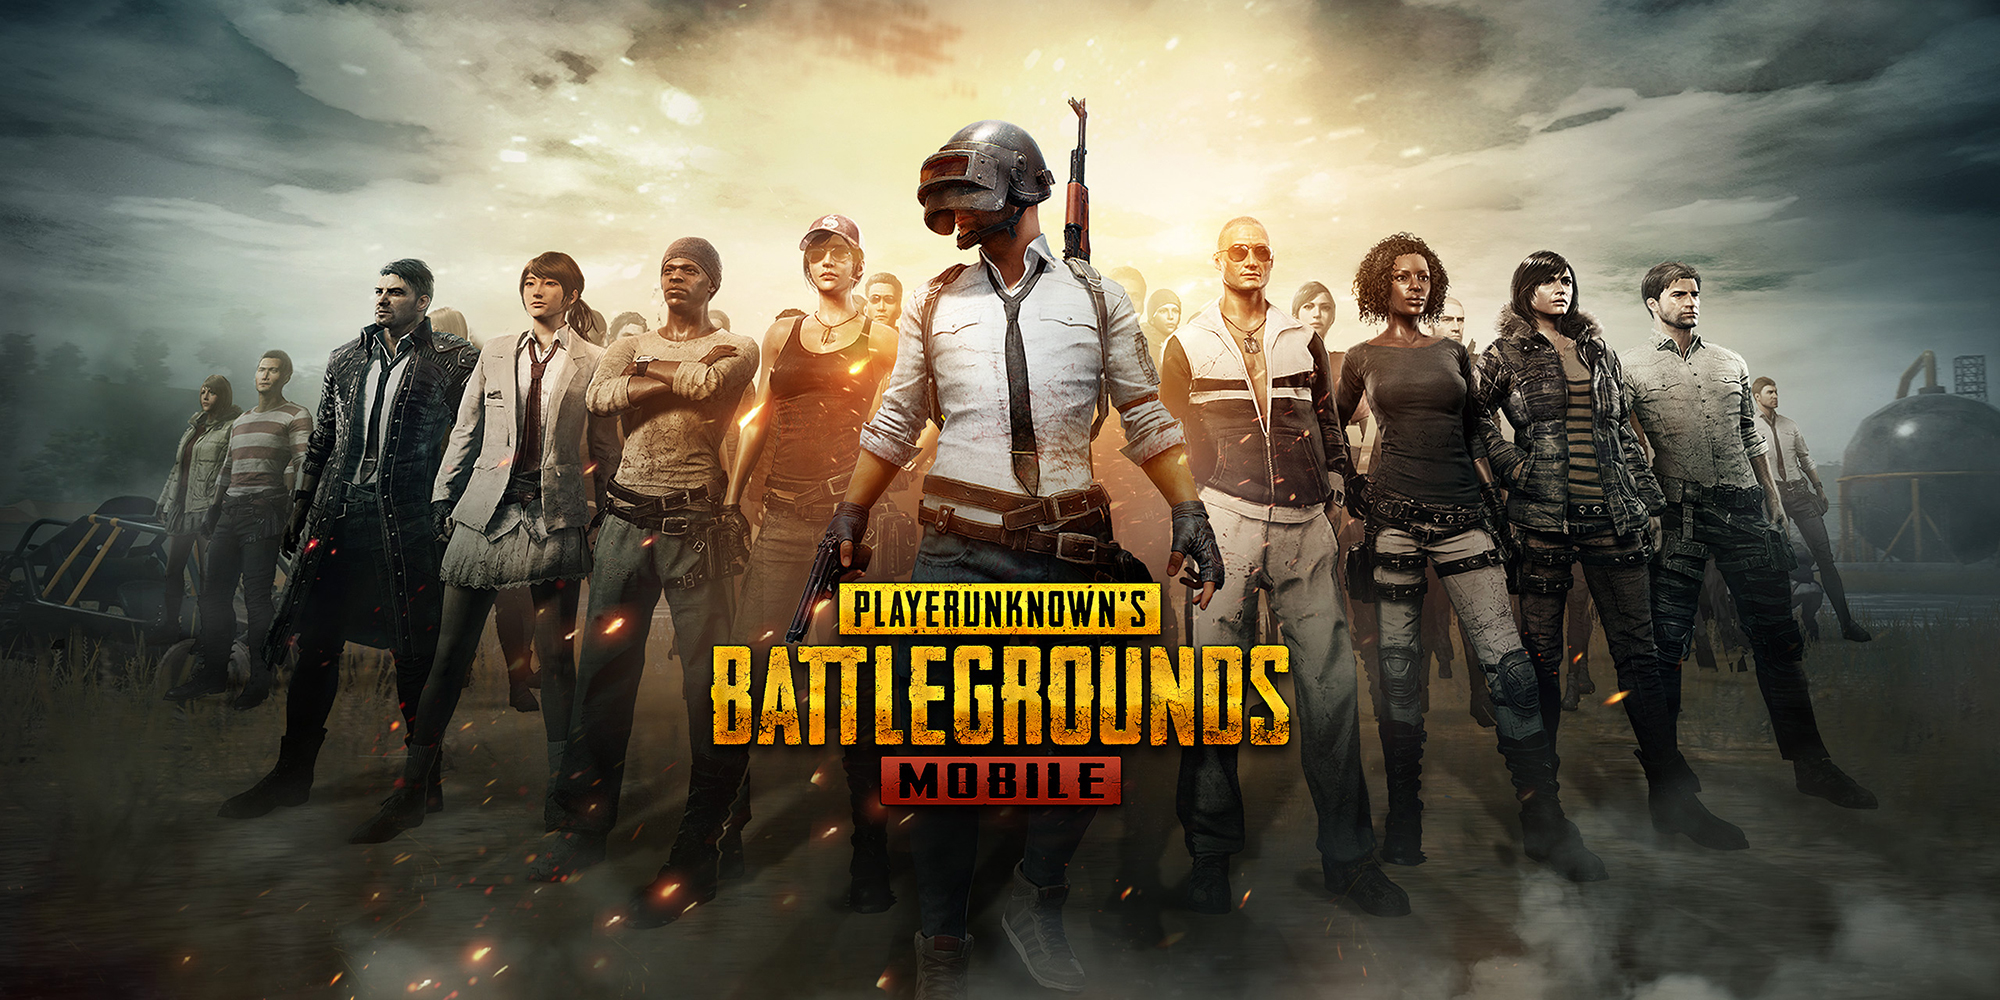 Pubg Mobile Adds Prime Subscriptions For Android And Ios 9to5google